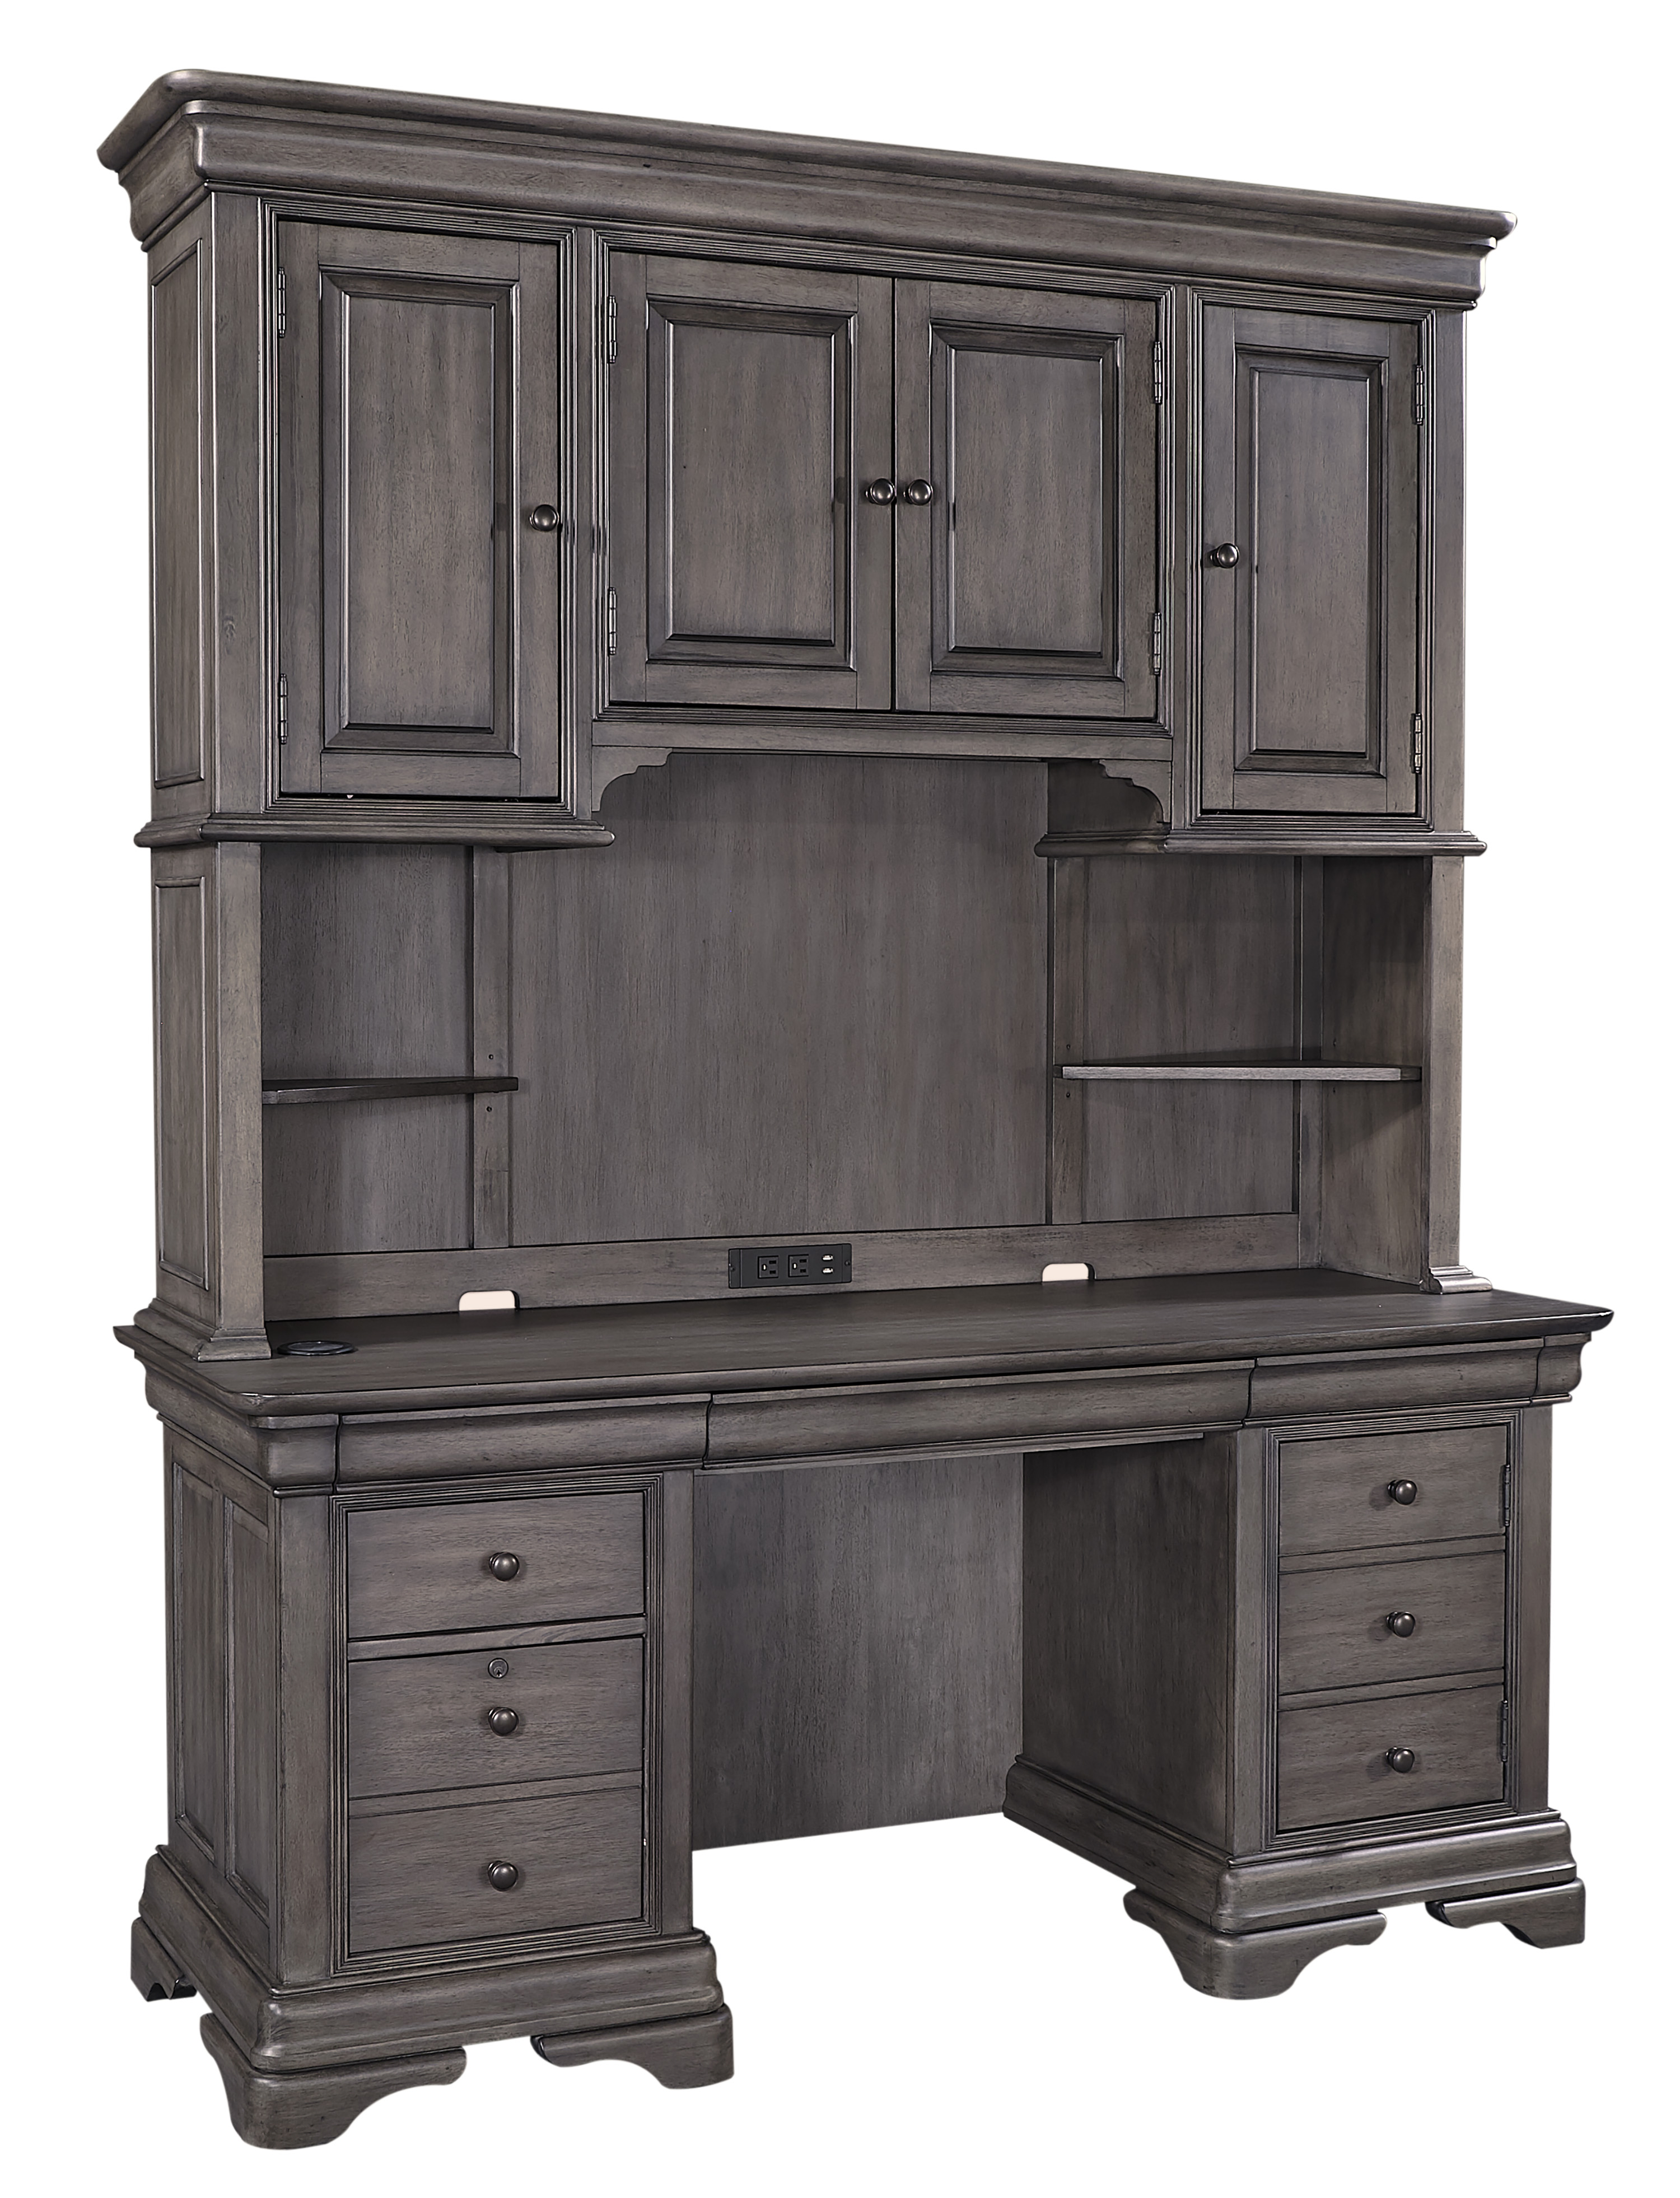 Sinclair Desk and Hutch by Aspenhome at Belfort Furniture